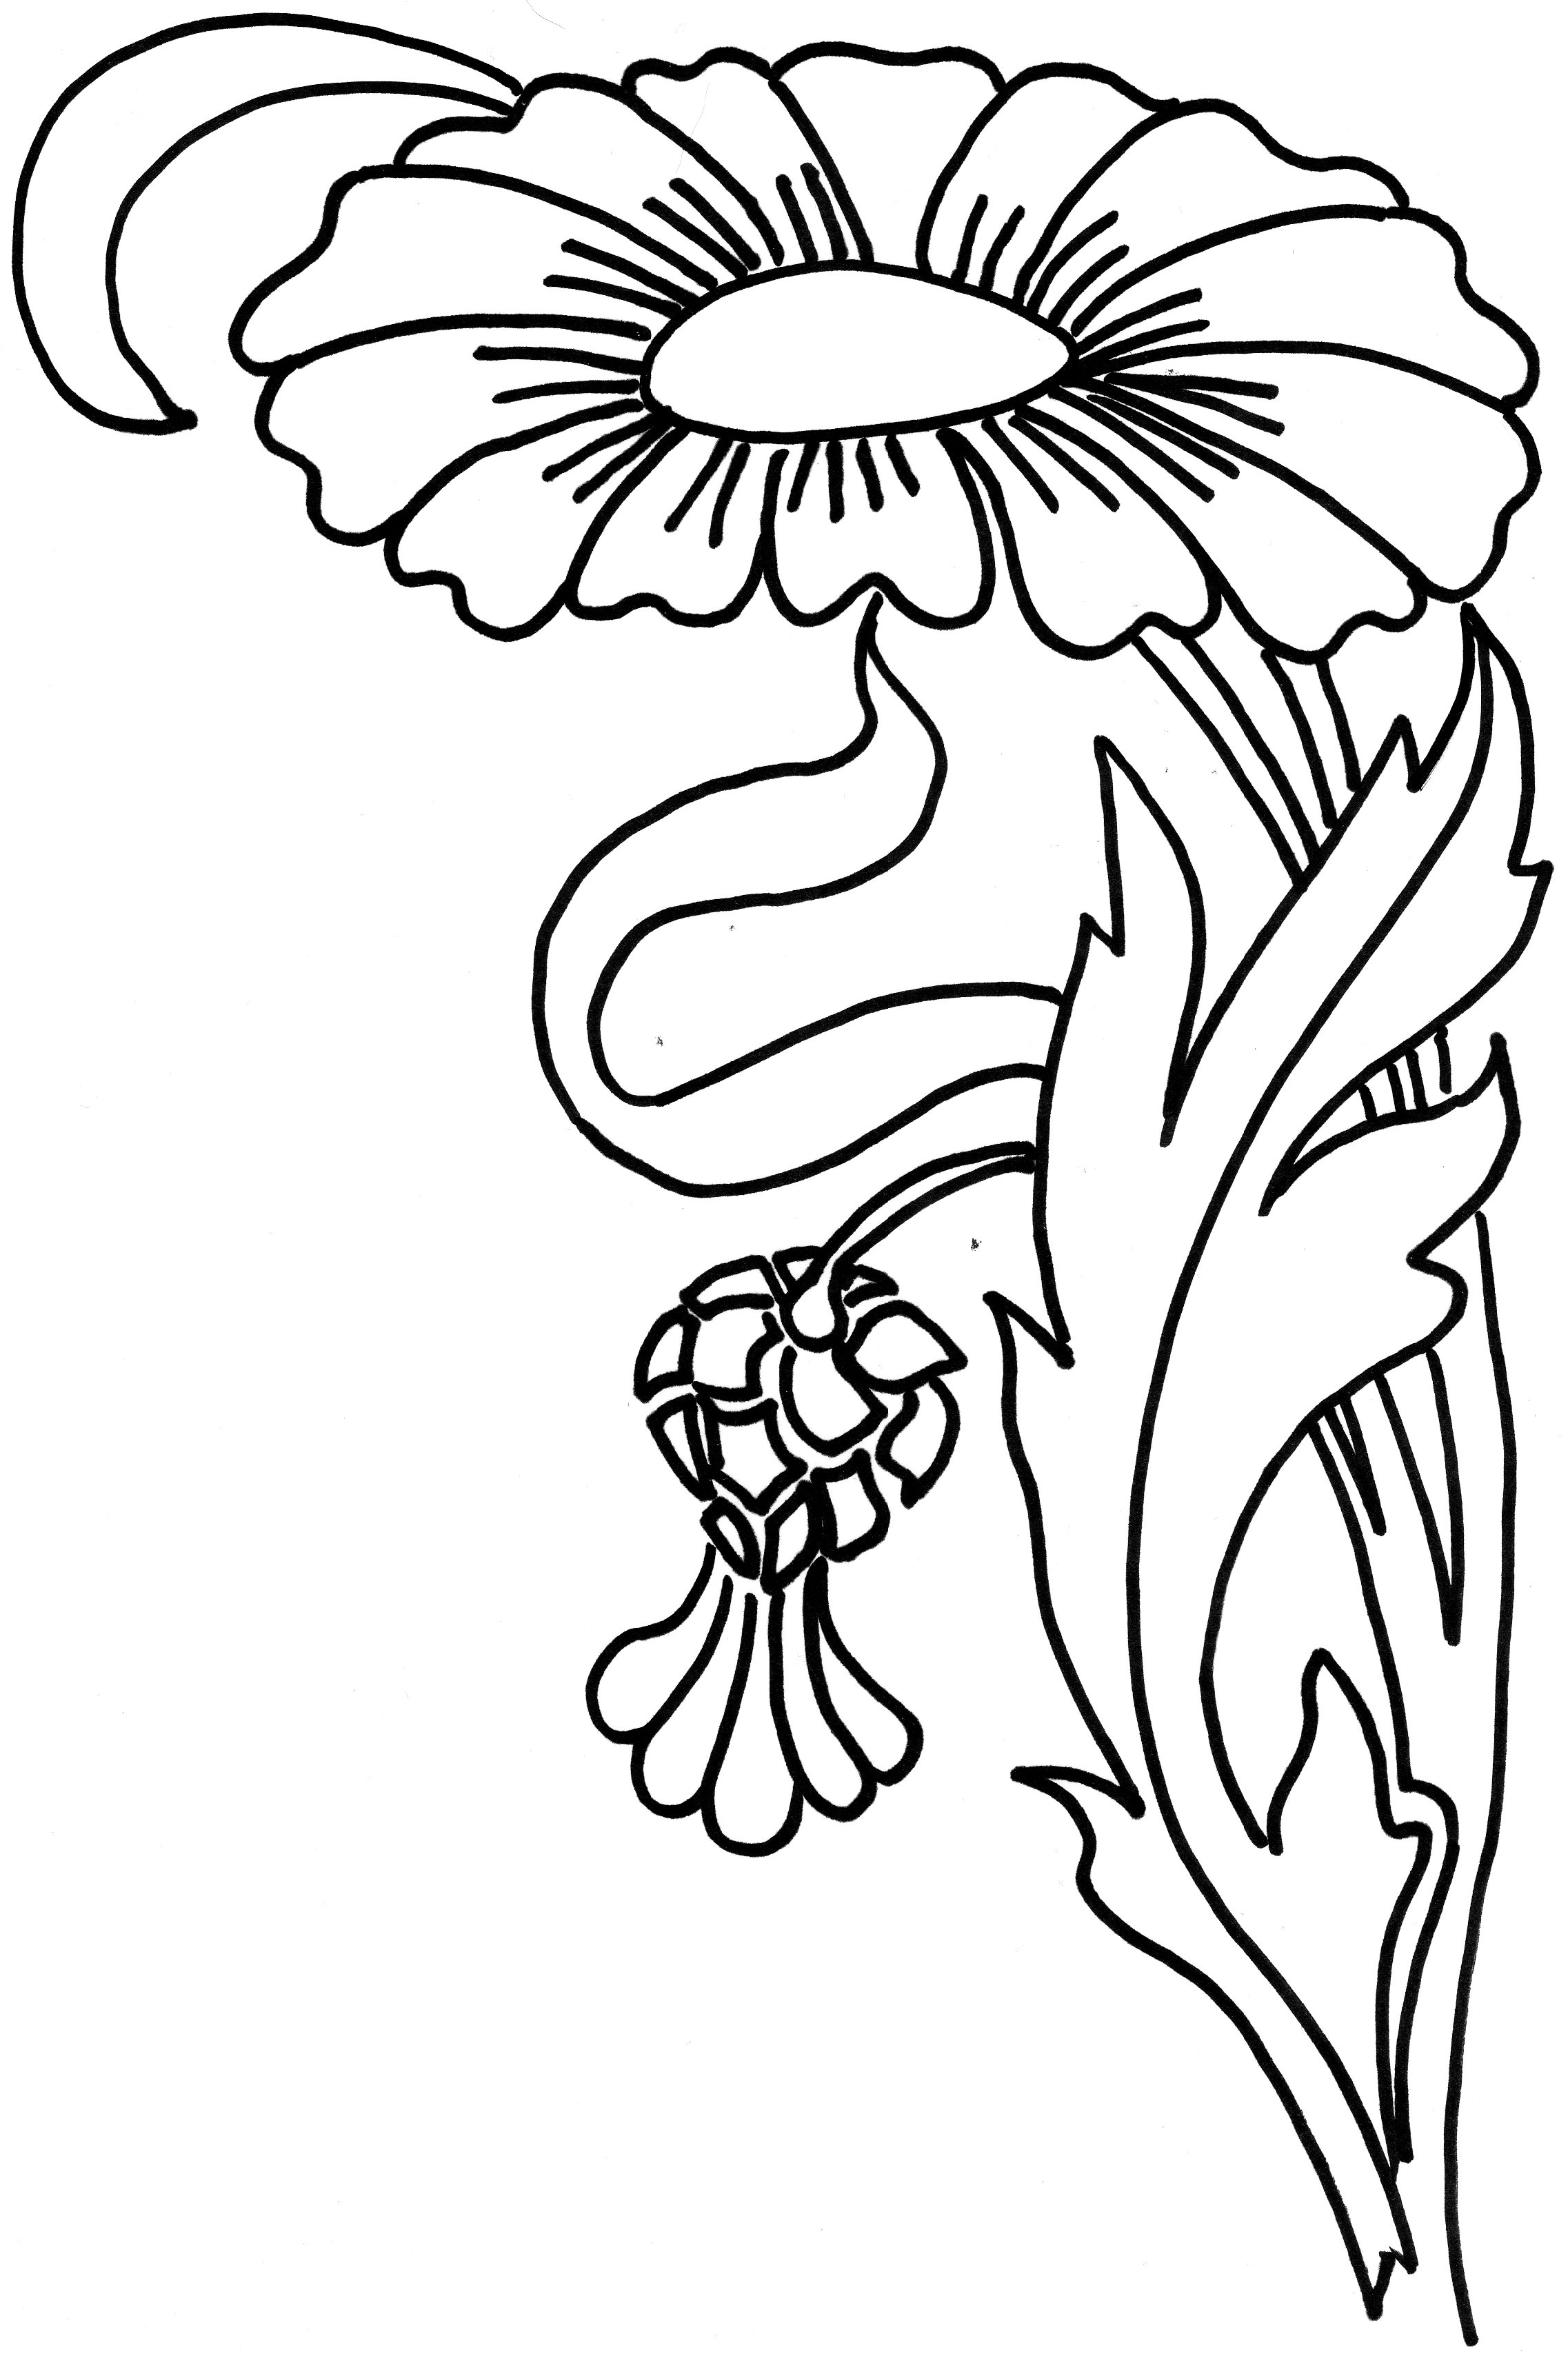 zinni petal coloring pages - photo#15